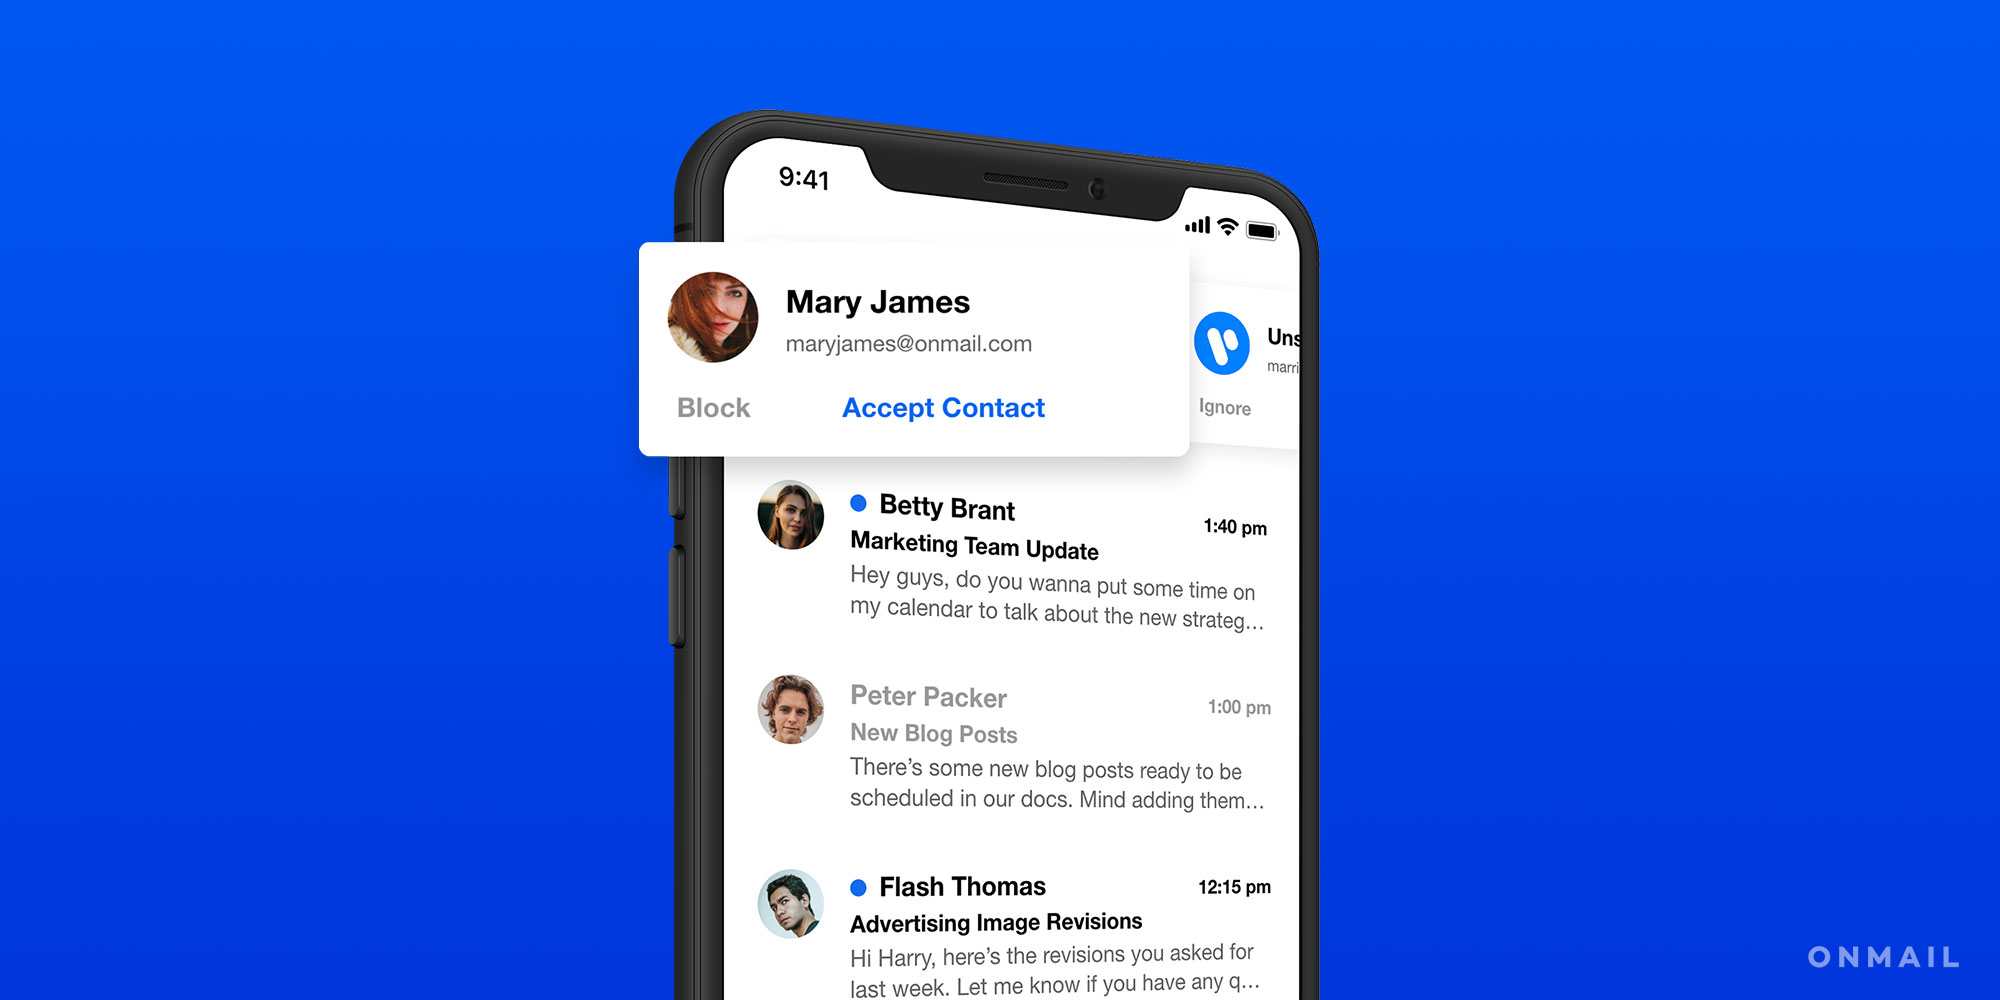 Edison's OnMail arrives to help you modernize your messaging with unique features